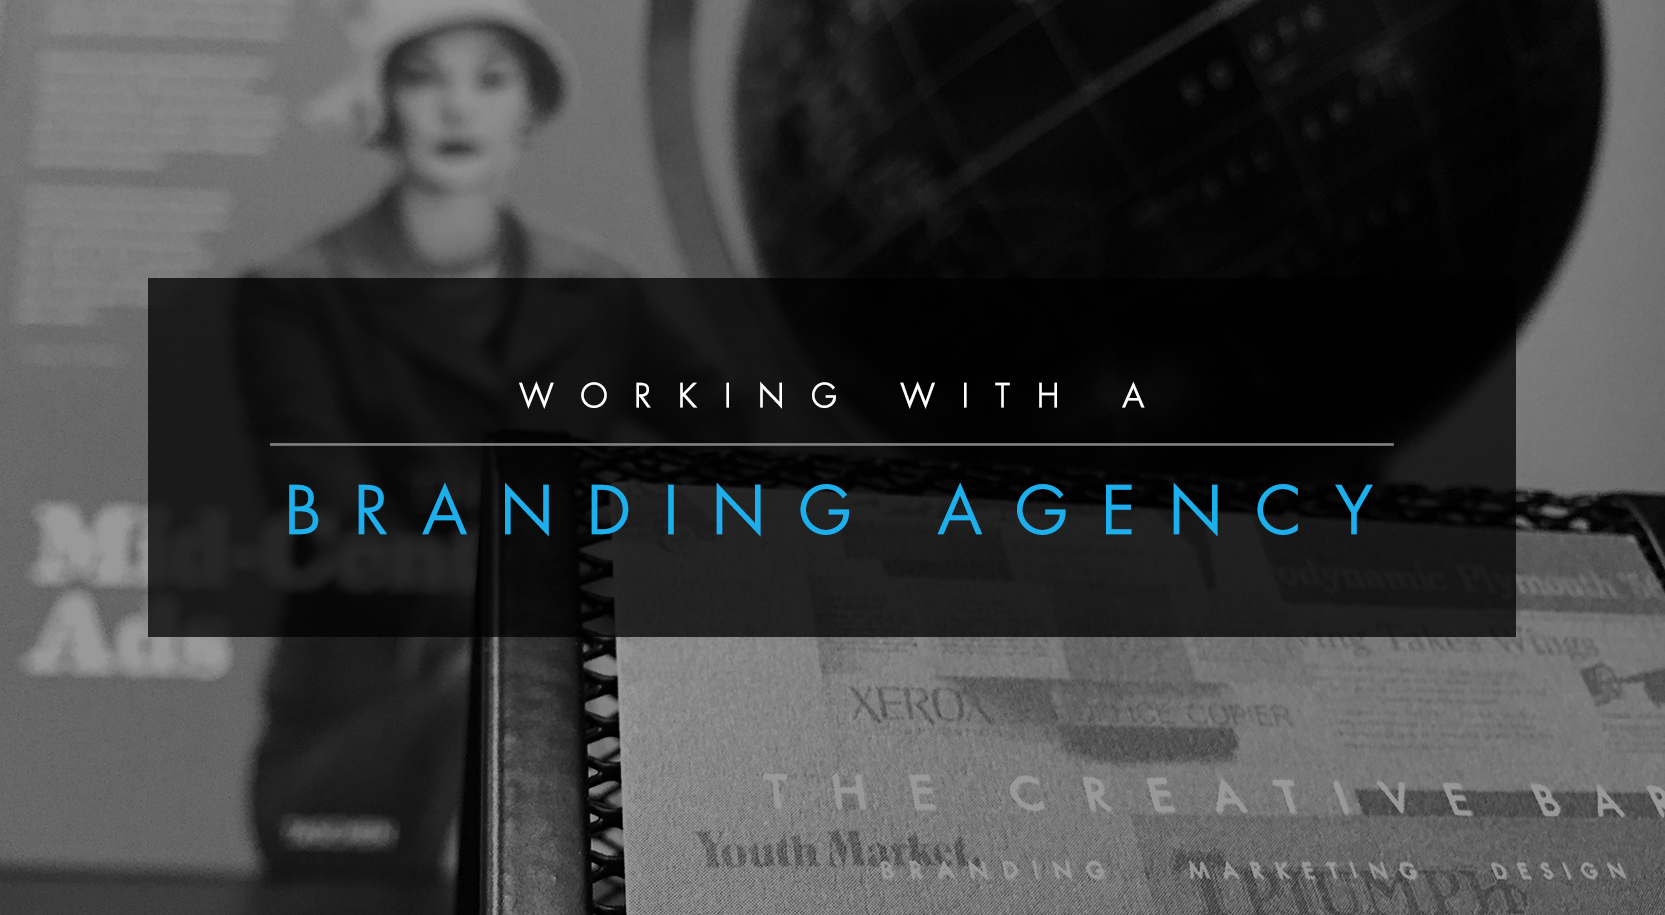 Working with a Branding Agency